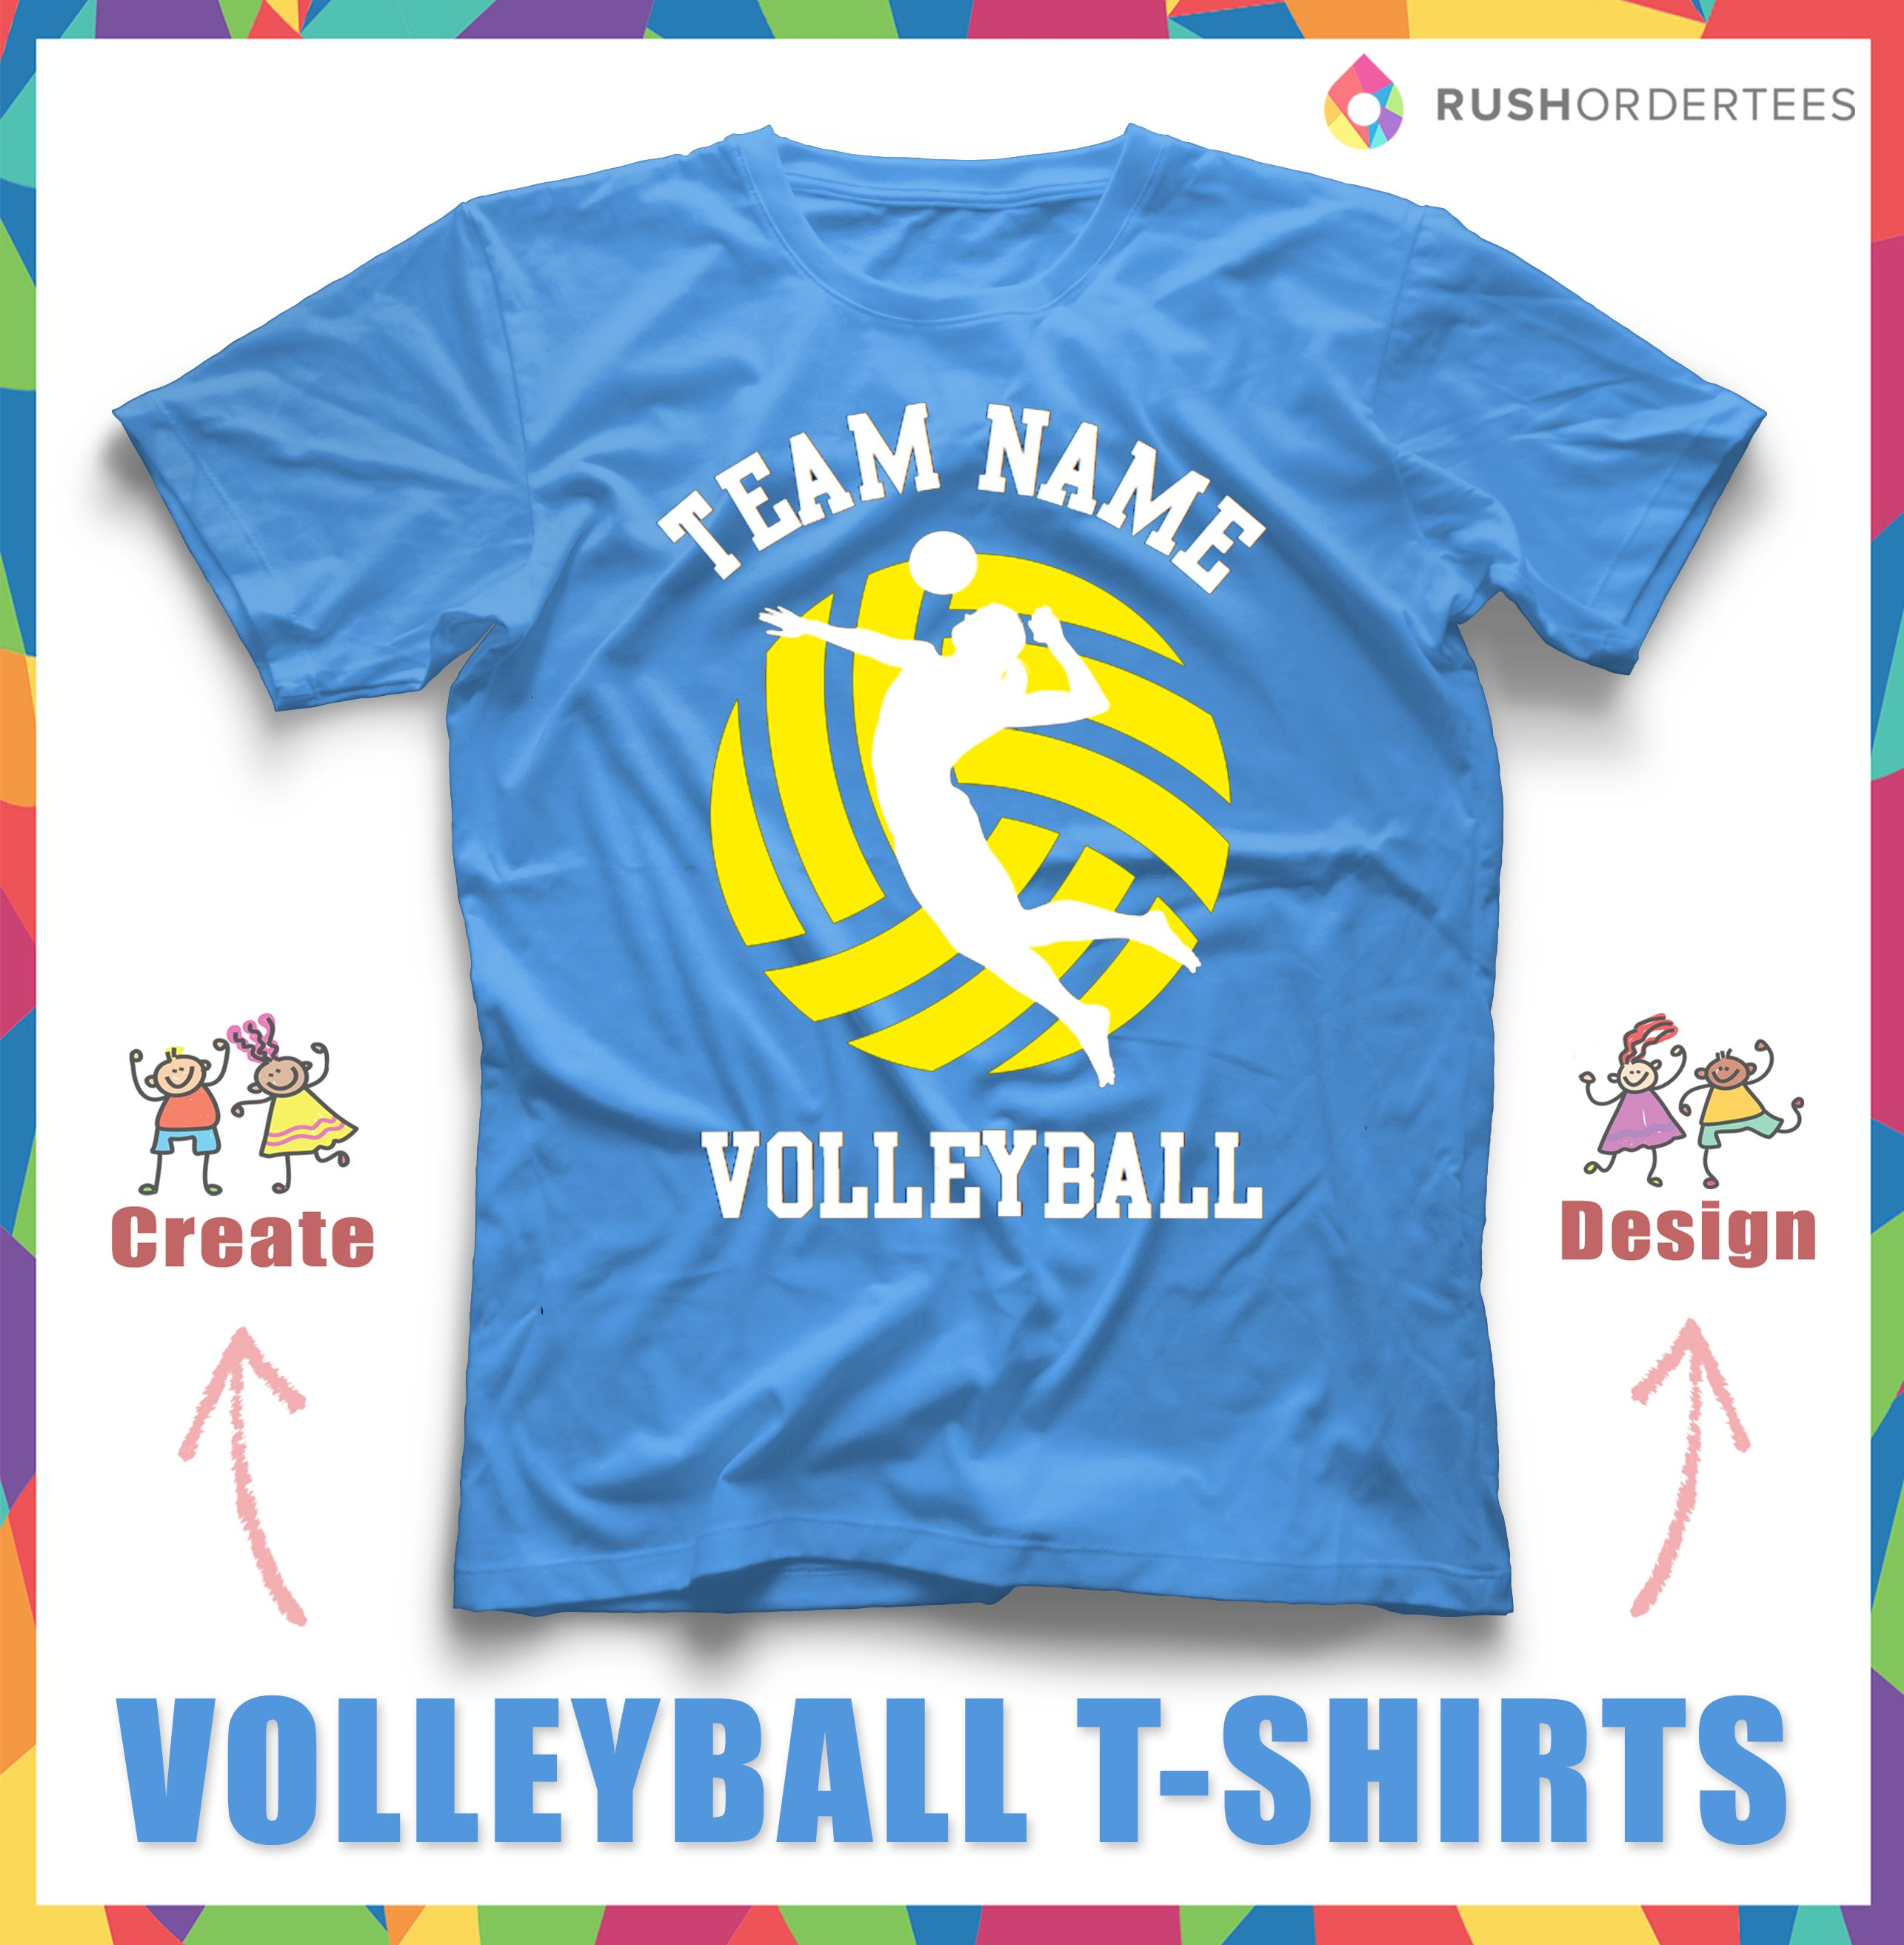 Volleyball Custom T Shirt Design Idea Edit This Custom T Shirt With Your Volleyball Volleyball T Shirt Designs Volleyball Jersey Design Volleyball Team Shirts